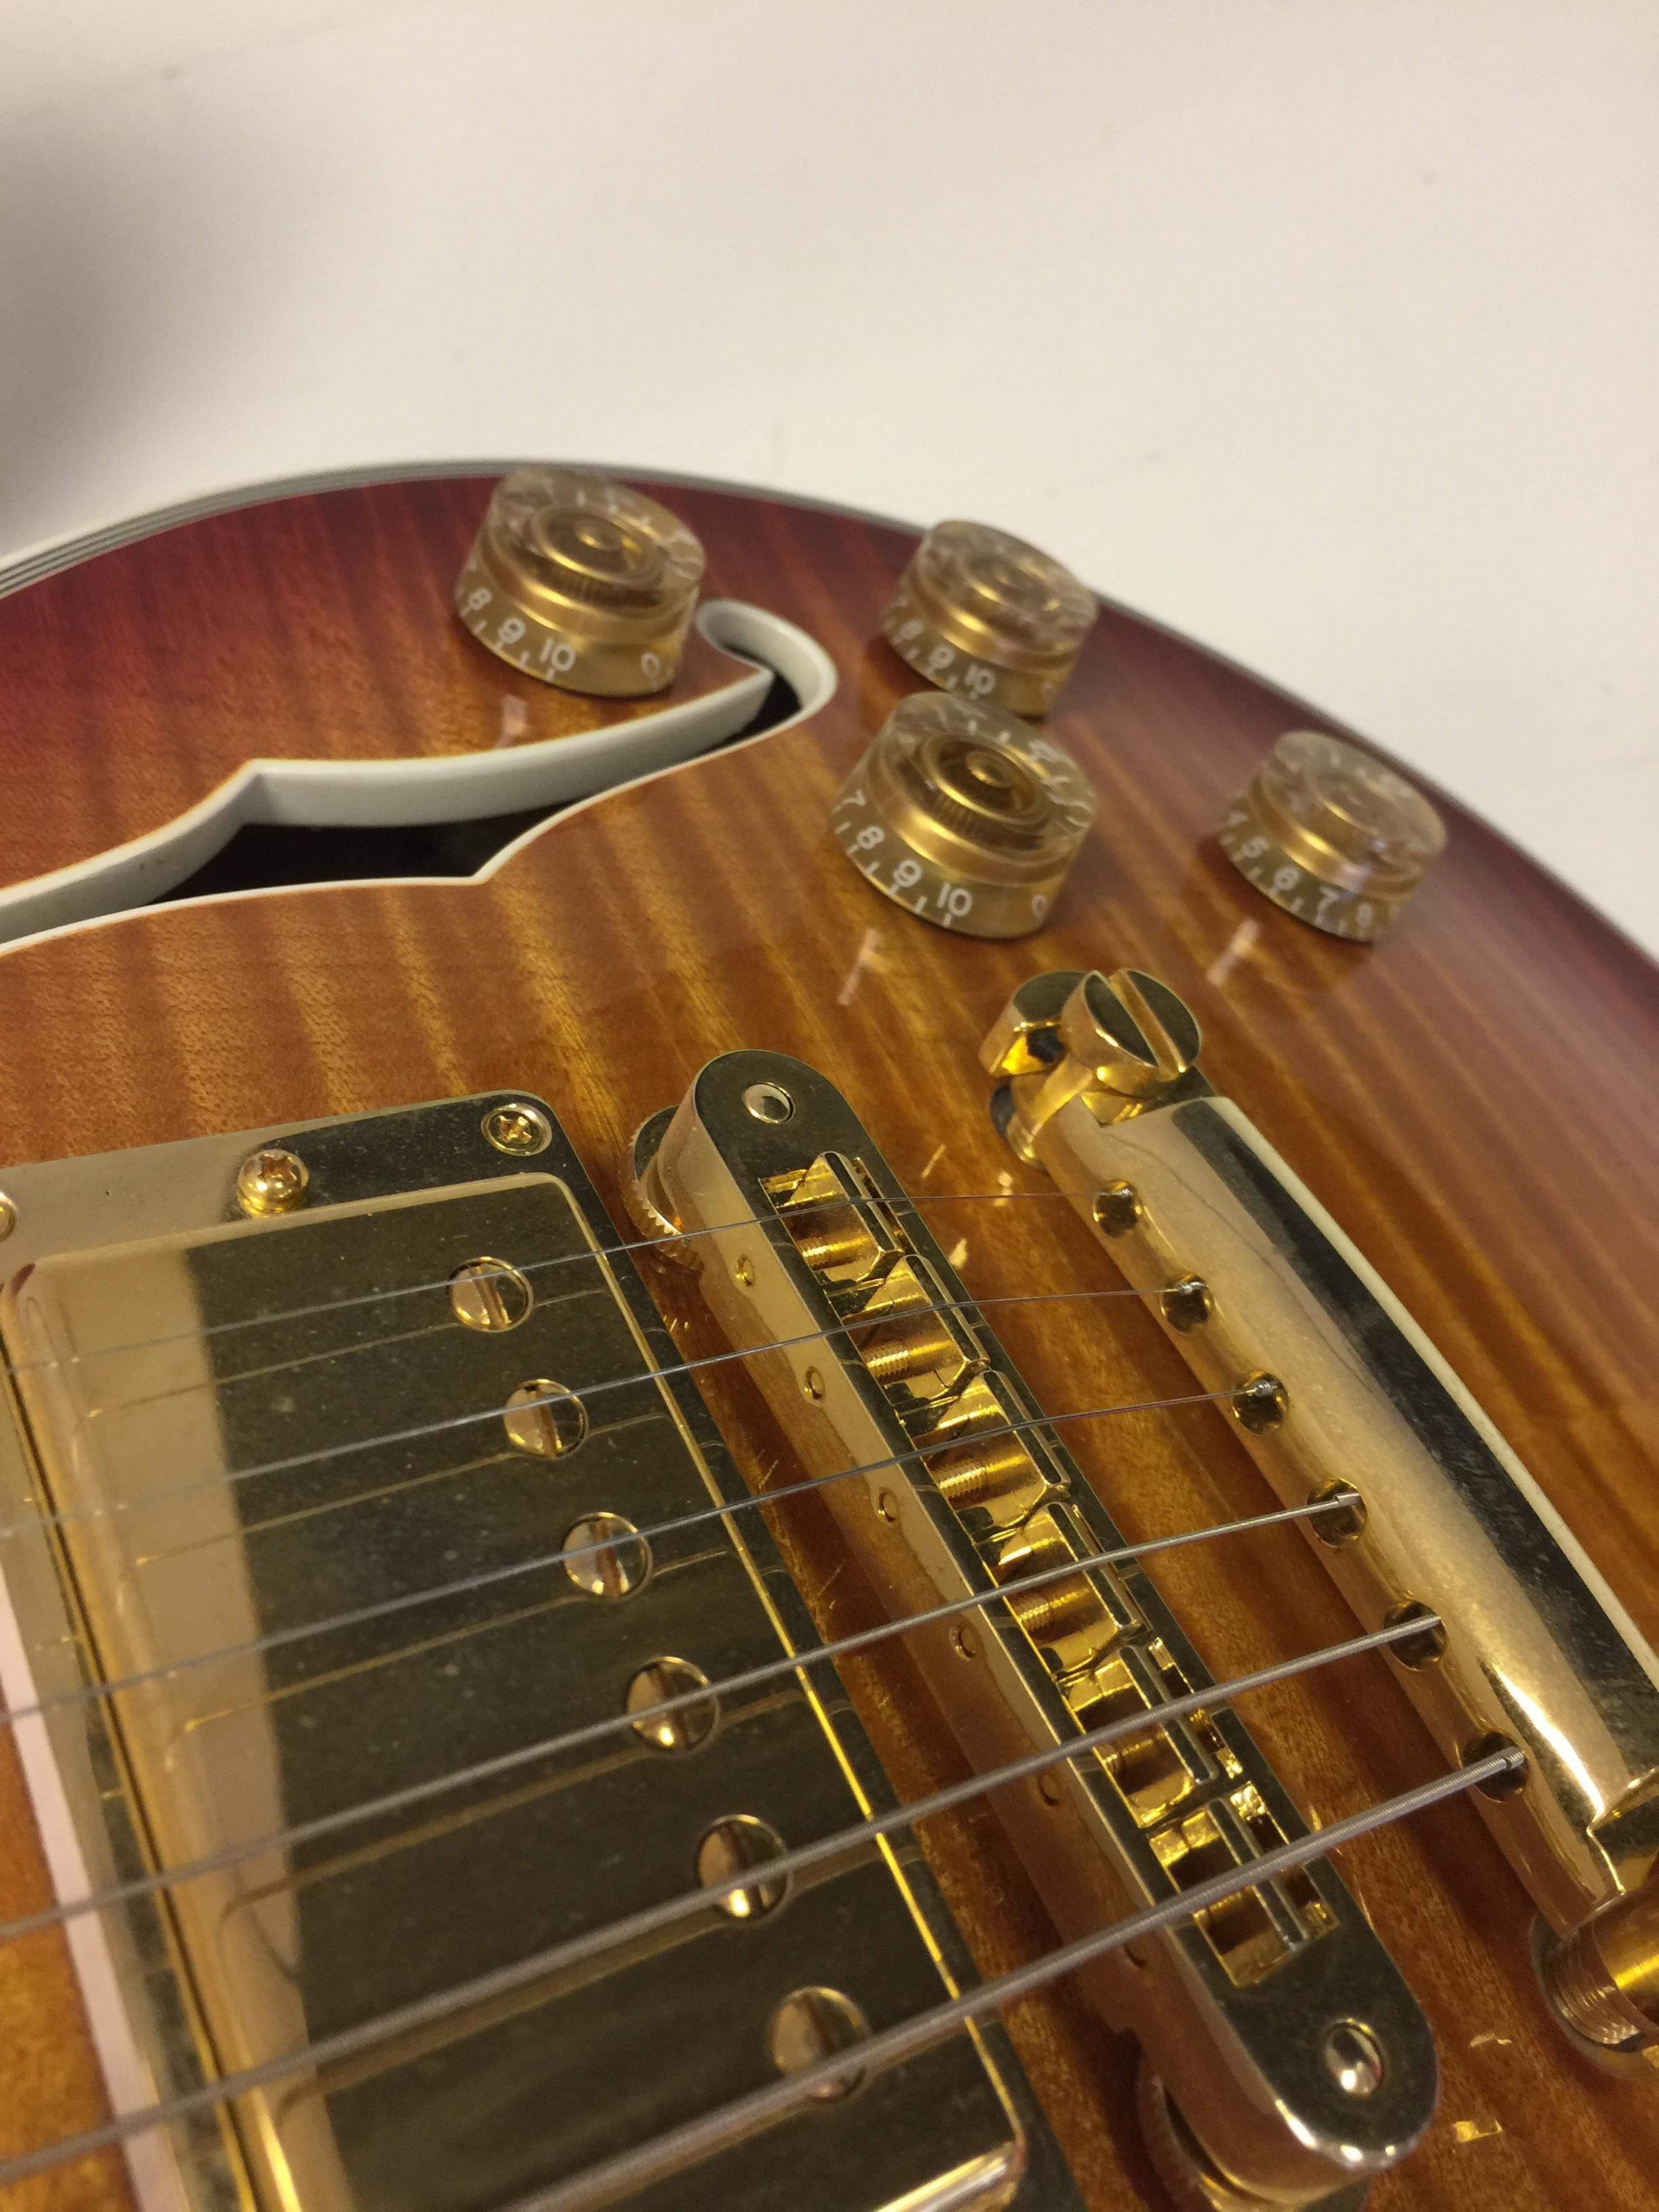 Lot 22 - GIBSON 2014 120TH ANNIVERSARY LES PAUL ELECTRIC GUITAR.